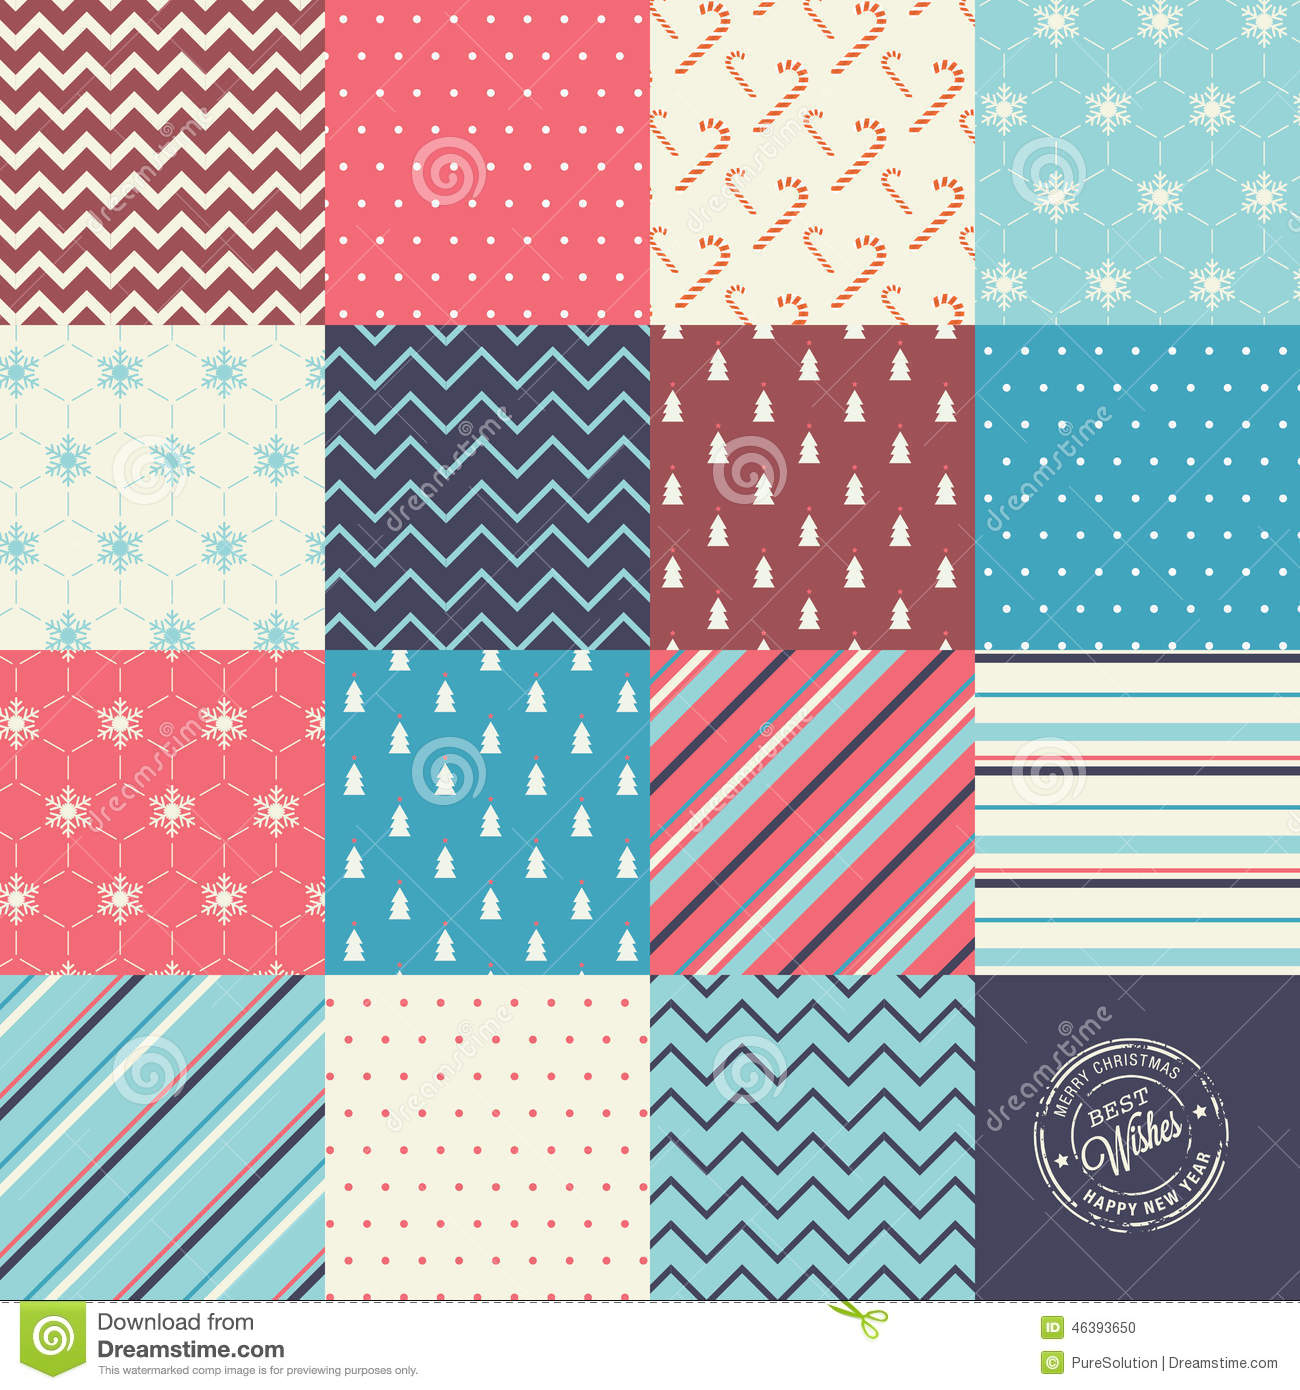 Scrapbook paper designs to print - Christmas And New Year Vector Seamless Patterns